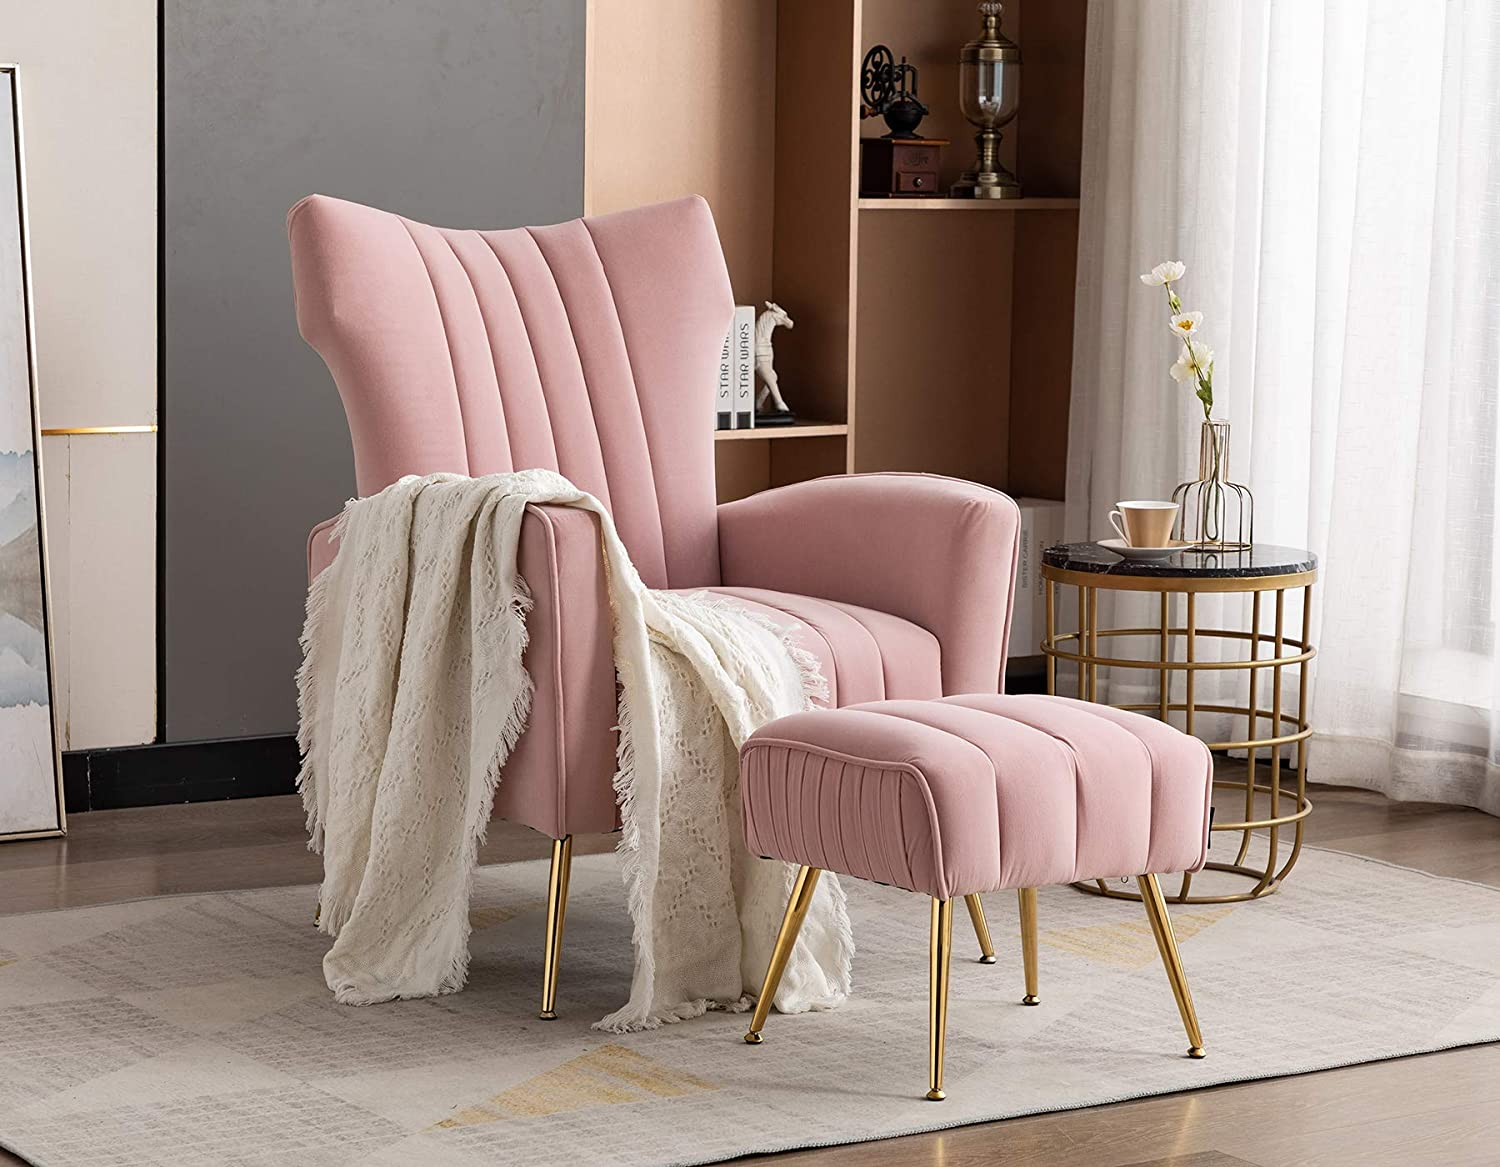 Artechworks Curved Tufted Accent Chair with Metal Gold Legs Velvet Upholstered Arm Club Leisure Modern Chair for Living Room Bedroom Patio, Pink